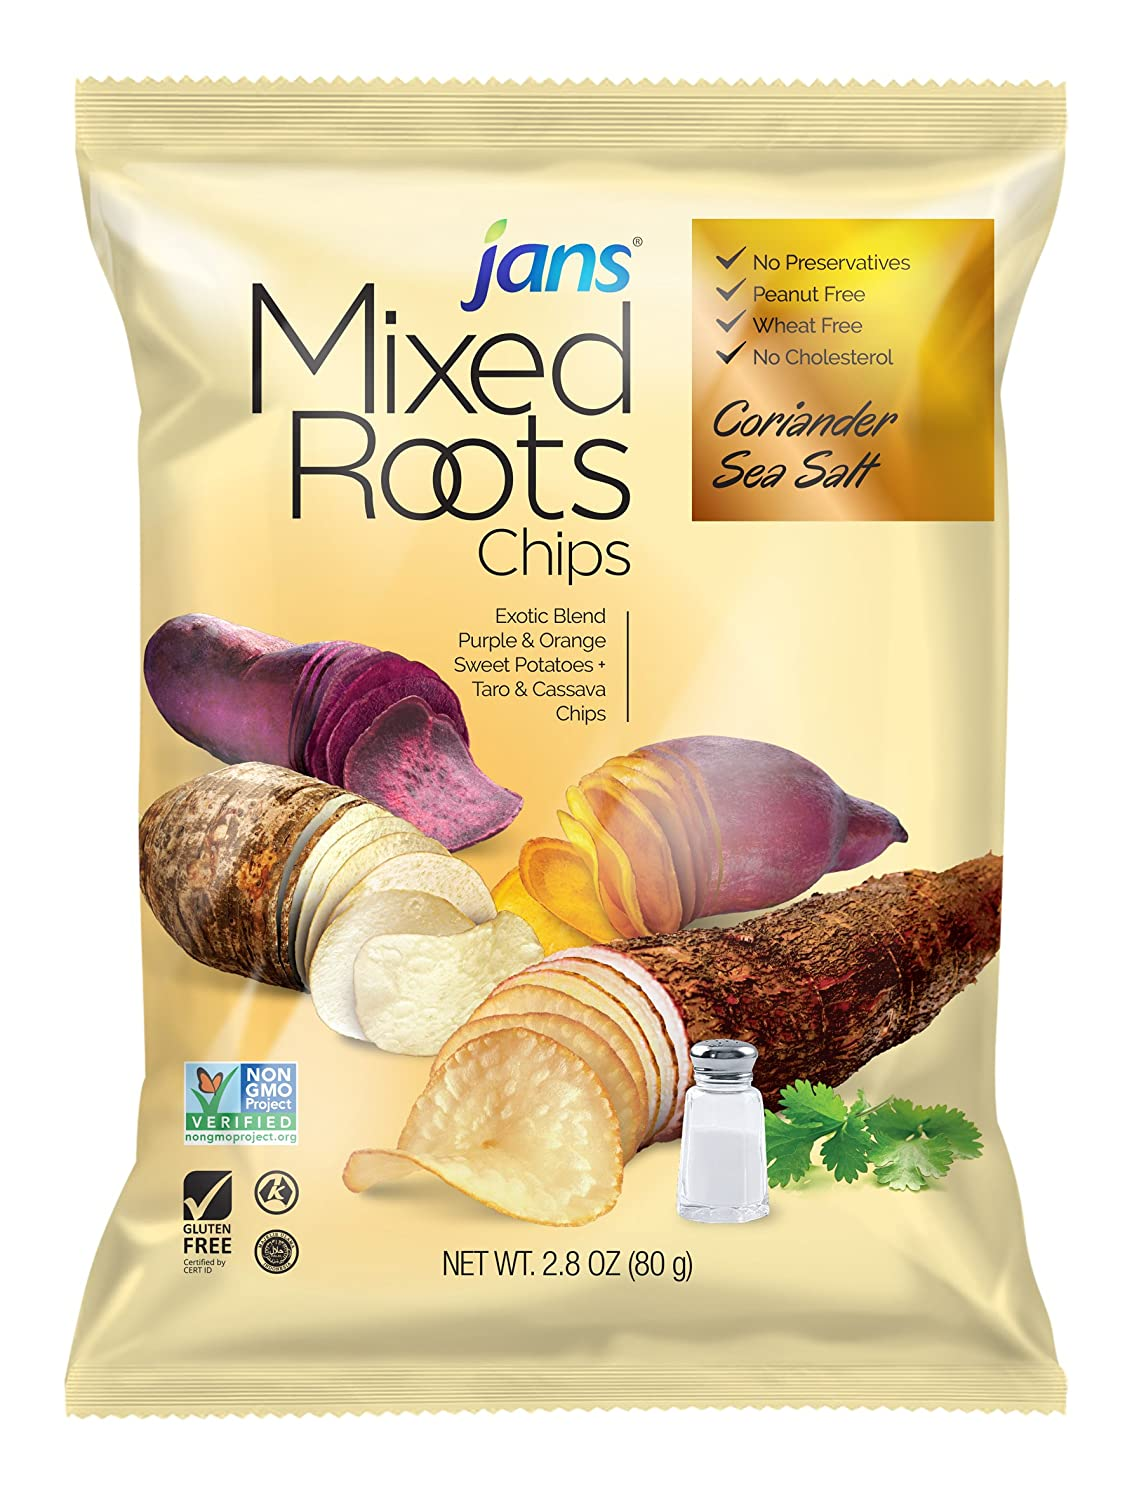 Mixed Roots Chips - All Natural Vegetable Chips (Coriander Sea Salt, 2.8 oz)